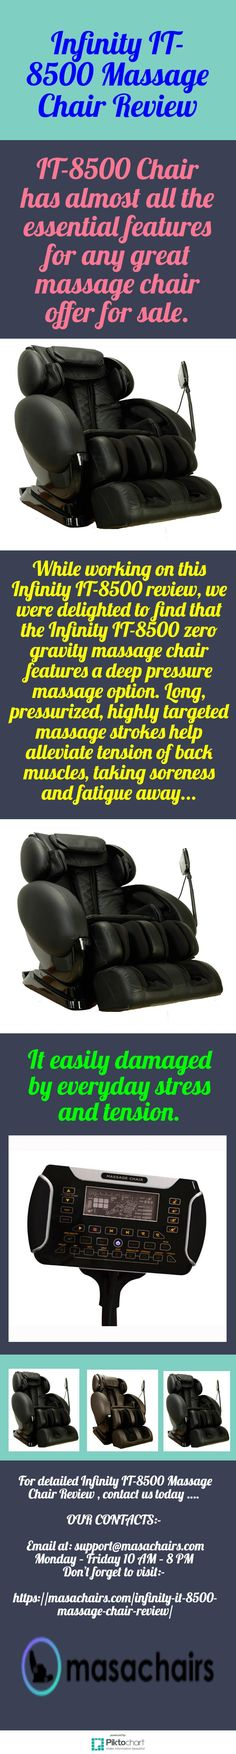 20 minute massage cycle of IT-8500 Massage Chair will reduce your stress and you will feel more energetic. For Infinity IT-8500 Massage Chair Review visit:  https://masachairs.com/infinity-it-8500-massage-chair-review/